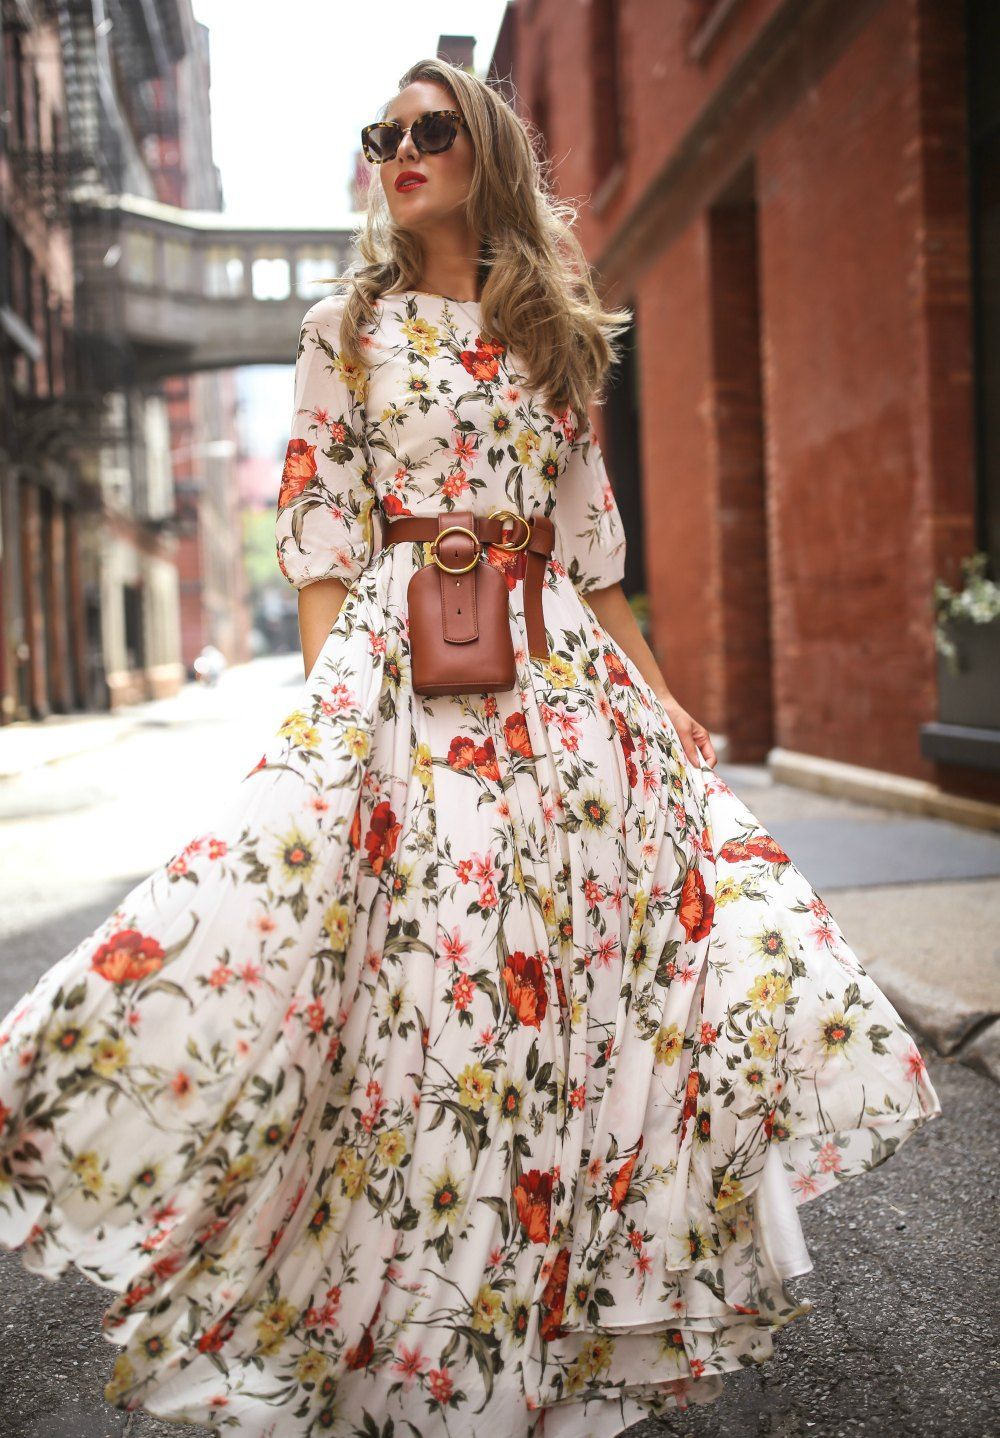 Maxi Dresses Are A Lifestyle Choice Here S Why Floral Print Maxi Dress With 3 4 Sleeves Brown Leather Belt Maxi Dress With Sleeves Chiffon Fashion Fashion [ 1438 x 1000 Pixel ]